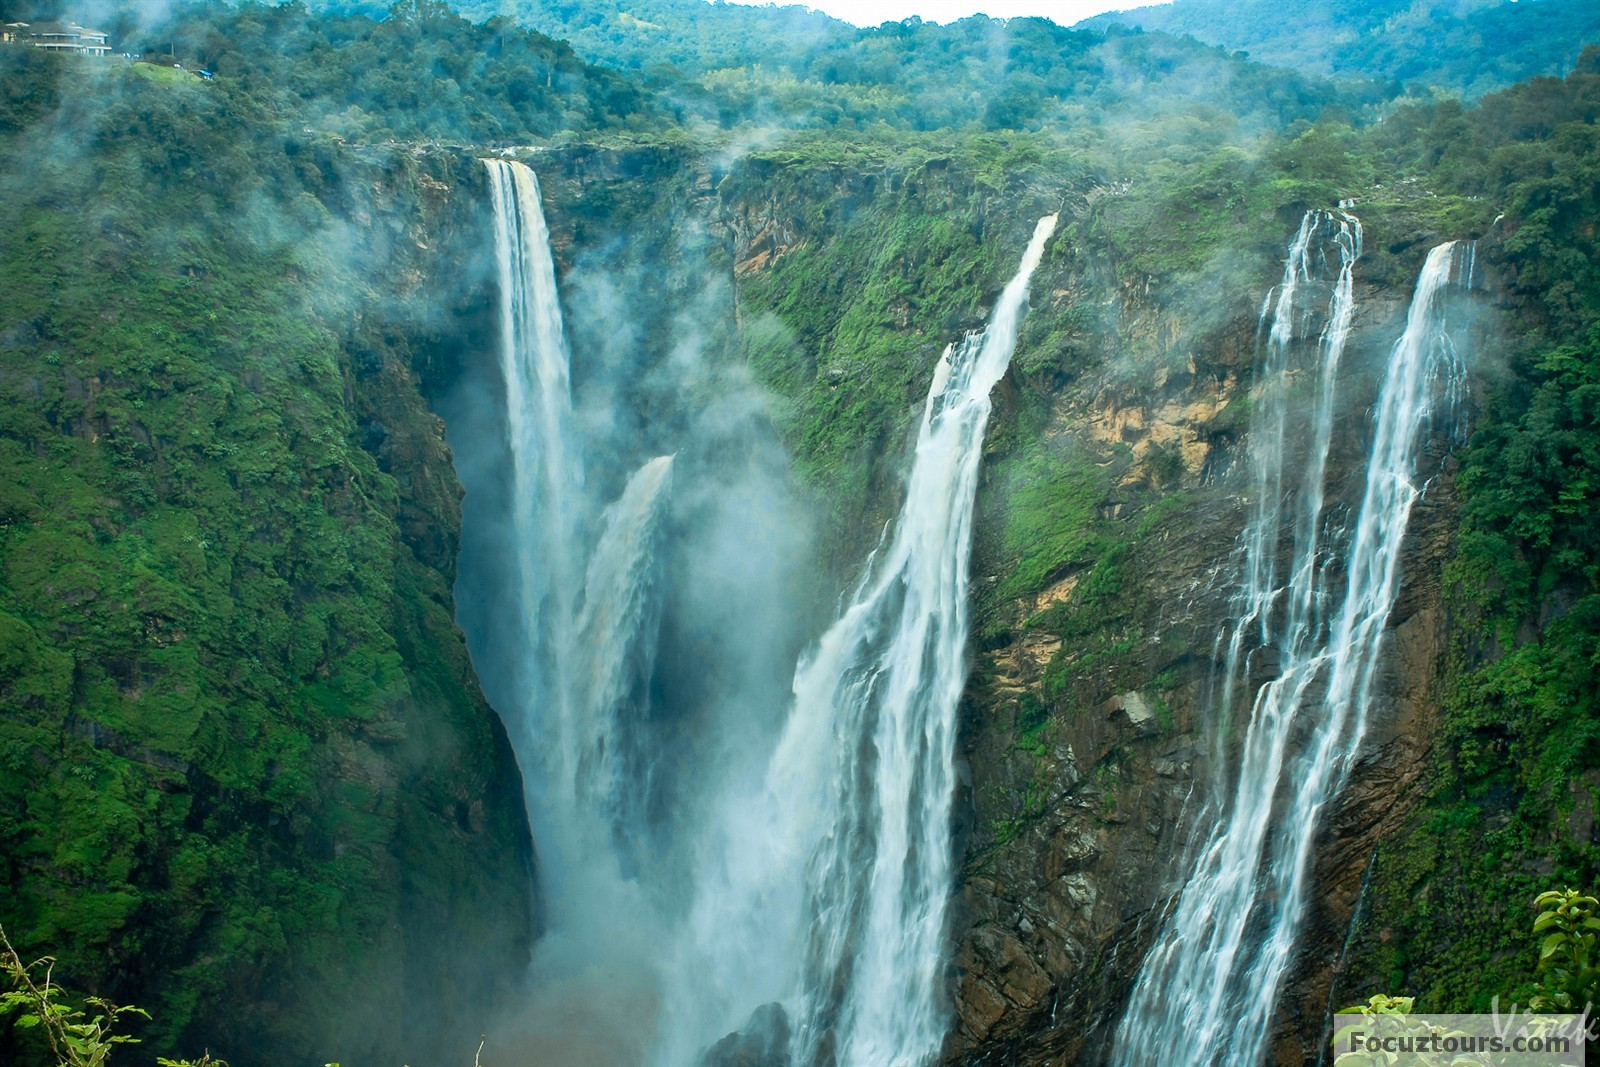 Jog Falls Hd Wallpaper Best Time To Visit Jogfalls Way To Be Your Self In A